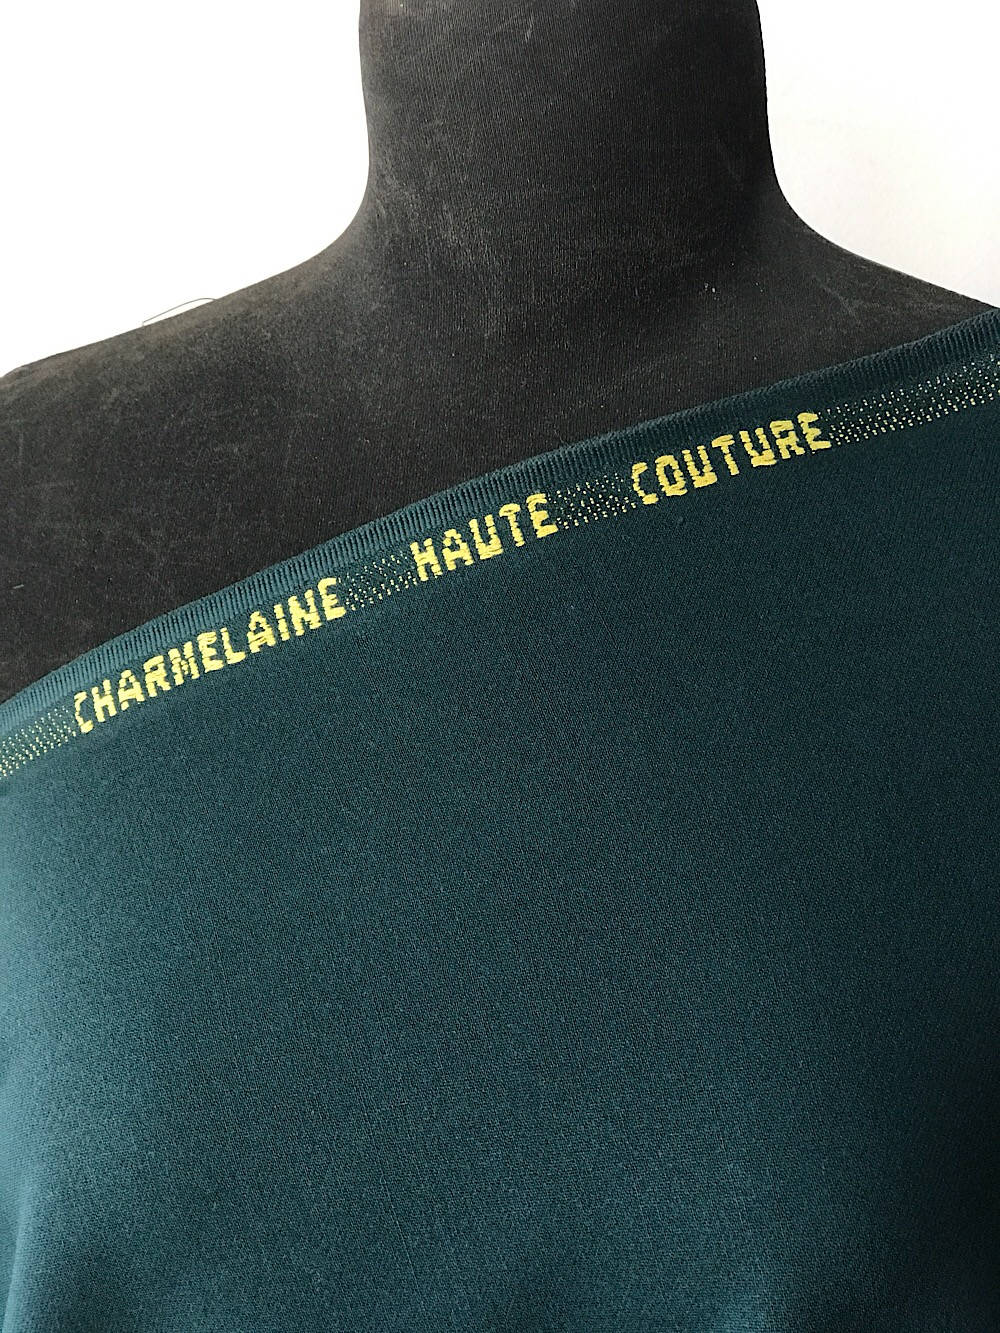 Green Wool venetian suiting fabric, sateen wool dark Forrest green bottle green Charmelaine